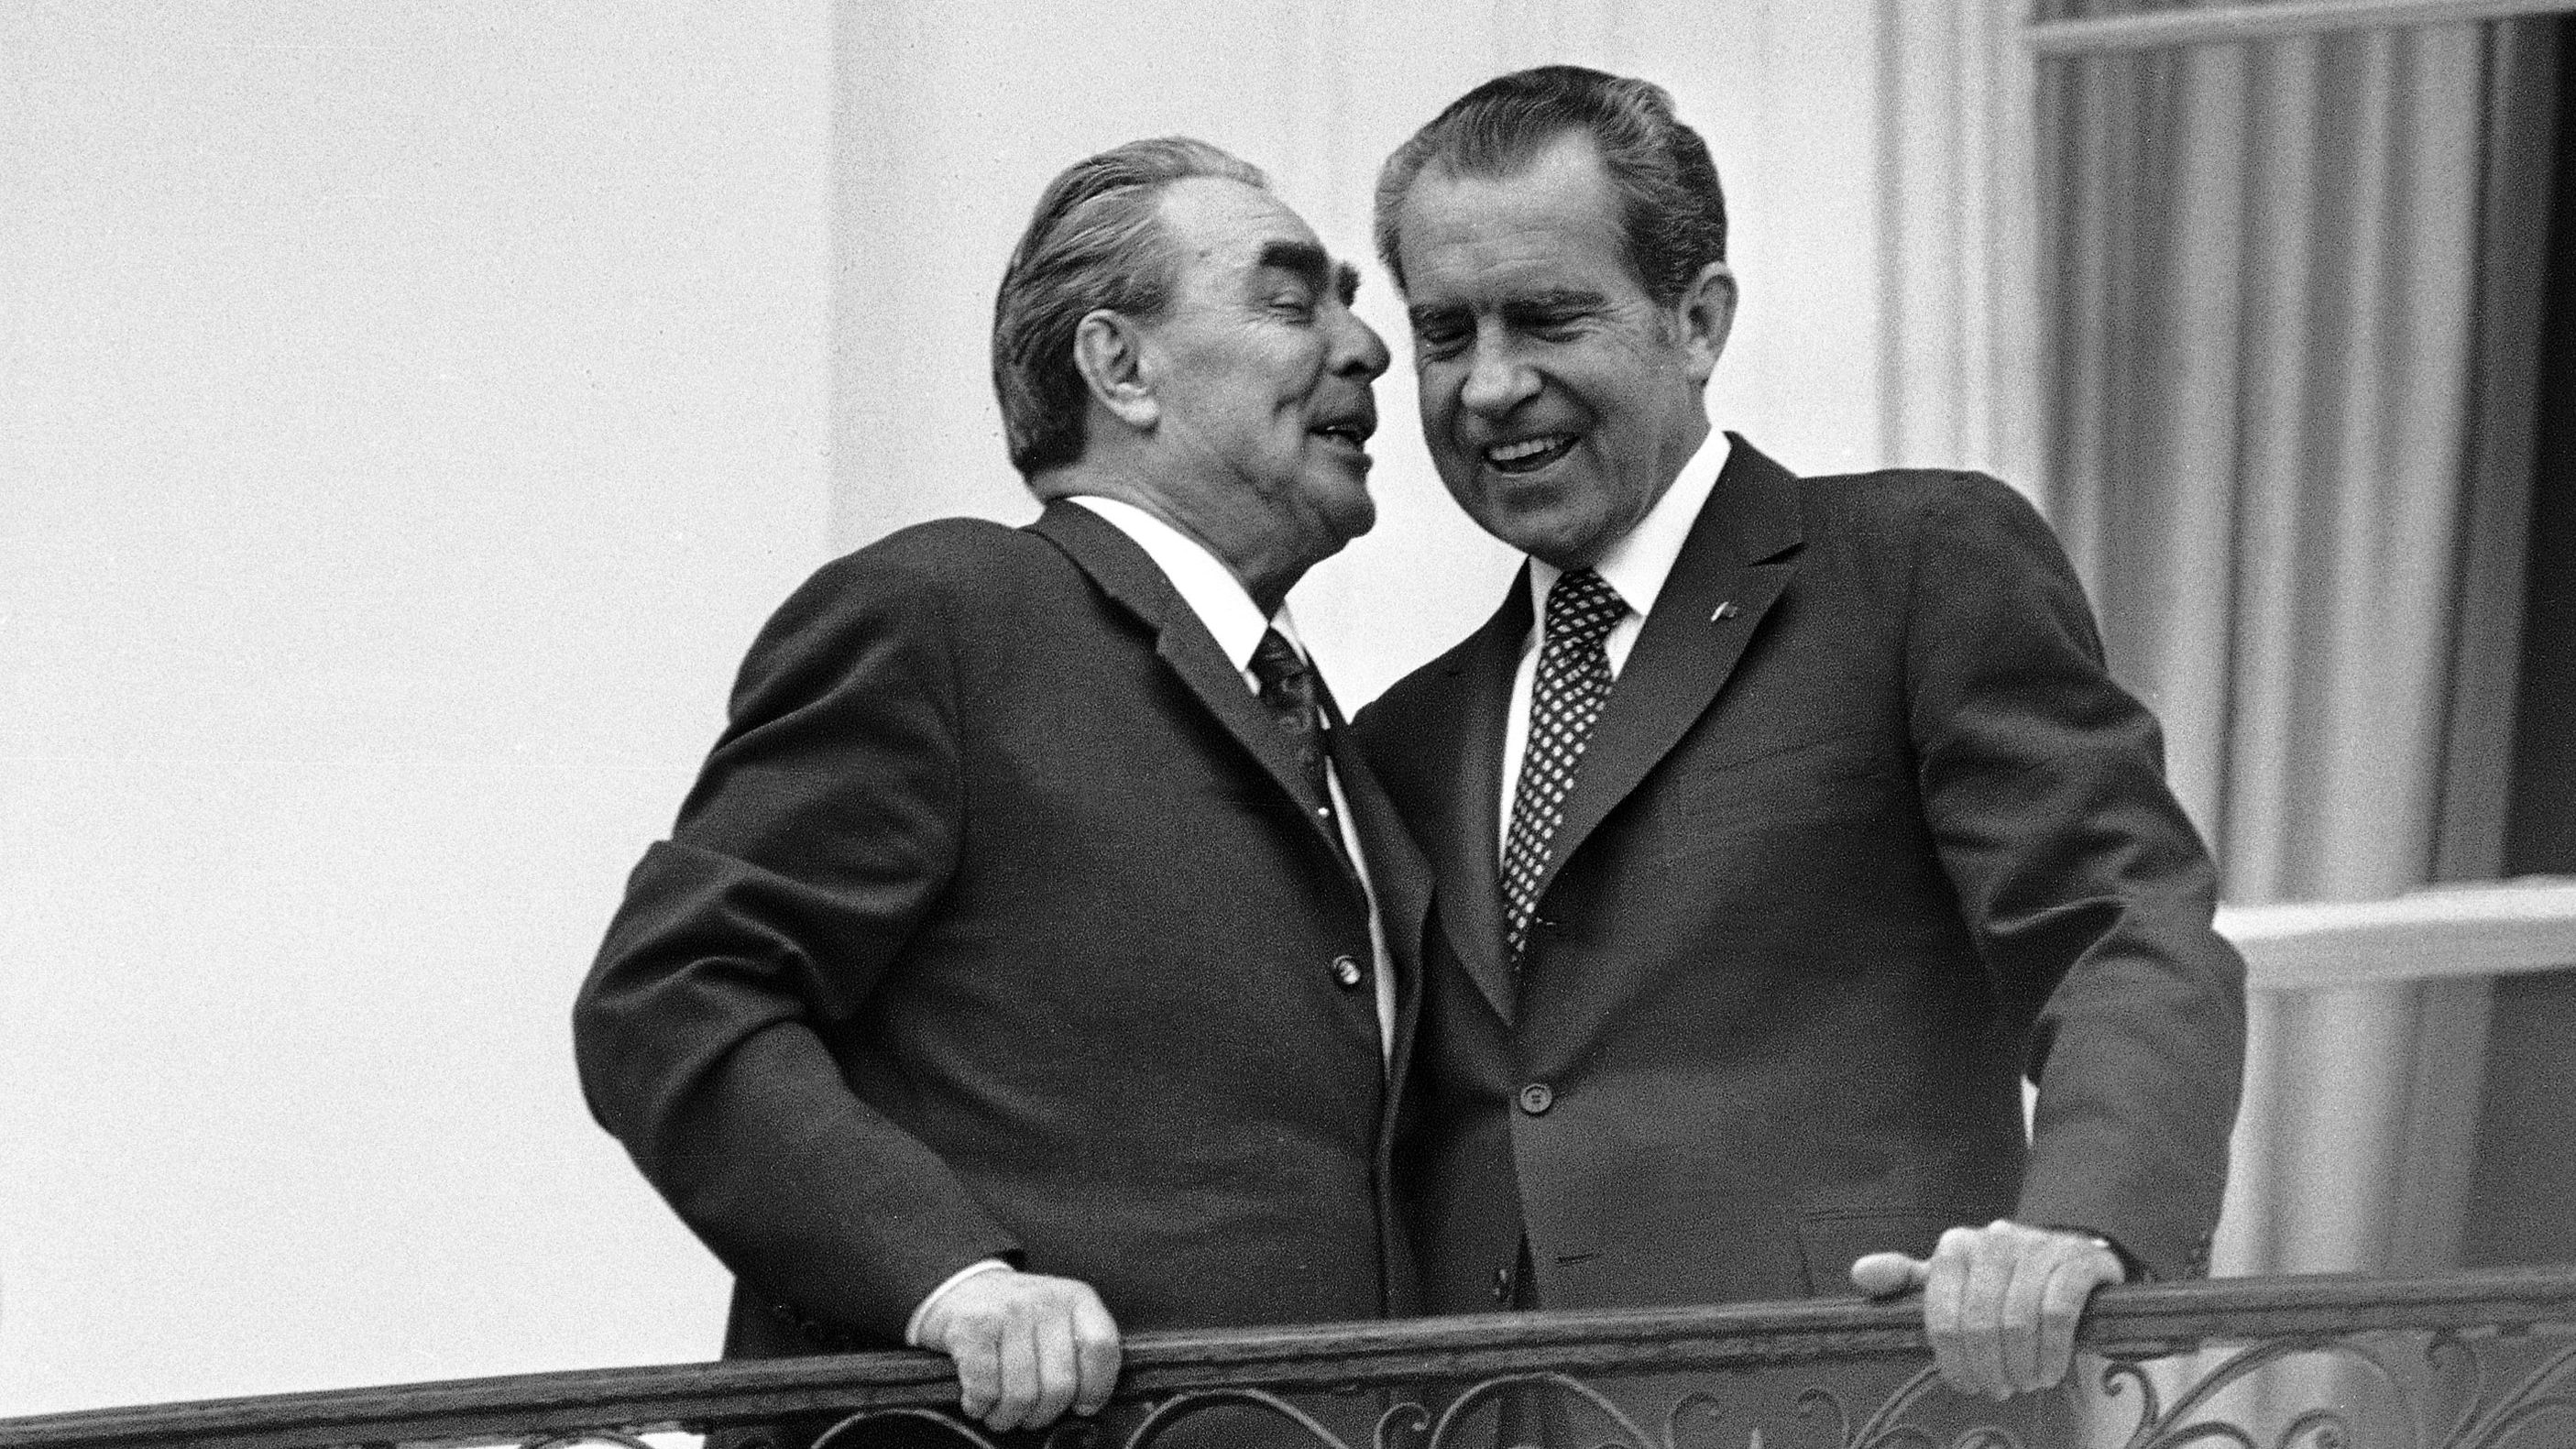 In this June 18,1973 file photo, Soviet leader Leonid I. Brezhnev, left, whispers in the ear of President Richard M. Nixon as the two leaders stand on a balcony at the White House in Washington. The meeting was the only summit ever recorded on an American presidential taping system. The last 340 hours of tapes from Nixon's White House were released Wednesday, Aug. 21, 2013, along with more than 140,000 pages of text materials.